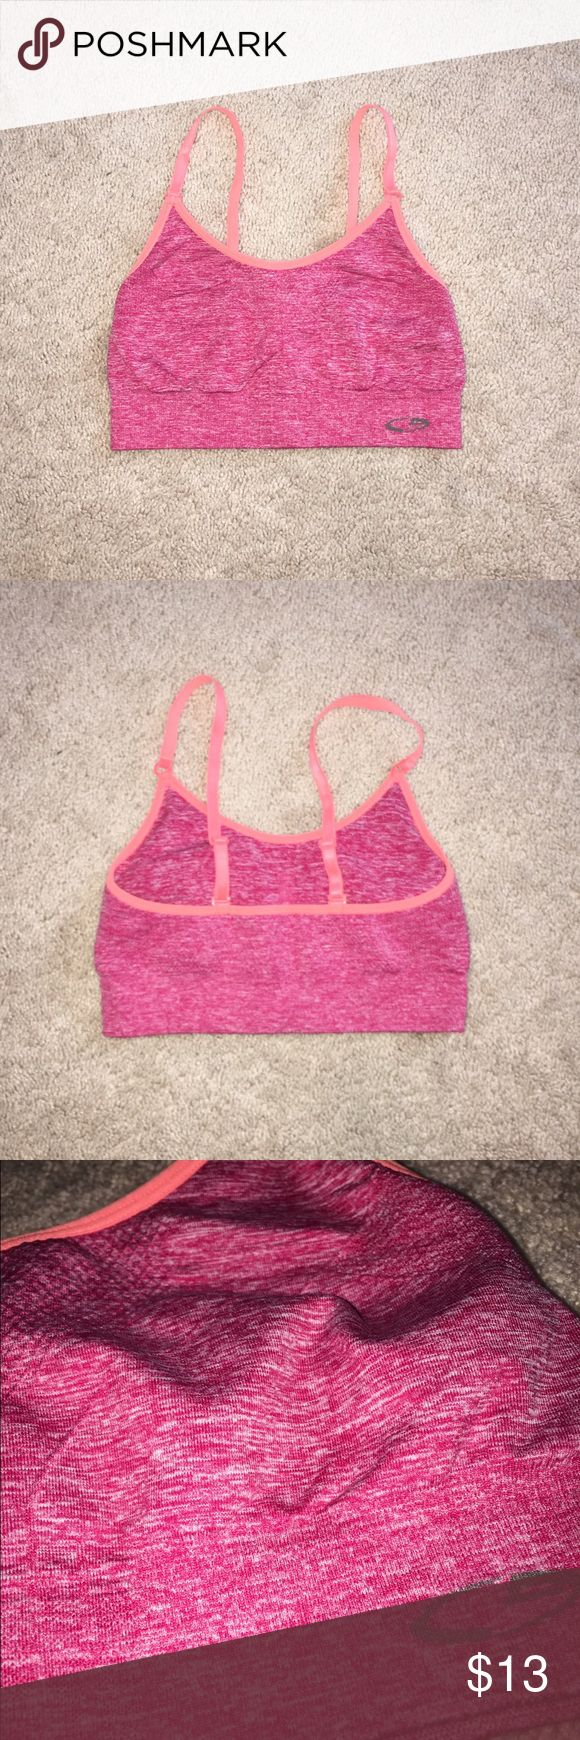 Champion Pink and Orange Sports Bra originally $19.99 size XS, fits true to size, could fit a small as well brand: Champion, purchased at Target  condition: like new, worn a few times  color: heathered raspberry pink and orange  ❤️super comfortable  ❤️adjustable straps  ❤️no padding ❤you ️don't nip through it lol ❤️low impact  ❤️perfect for lounging, yoga, etc Champion Intimates & Sleepwear Bras